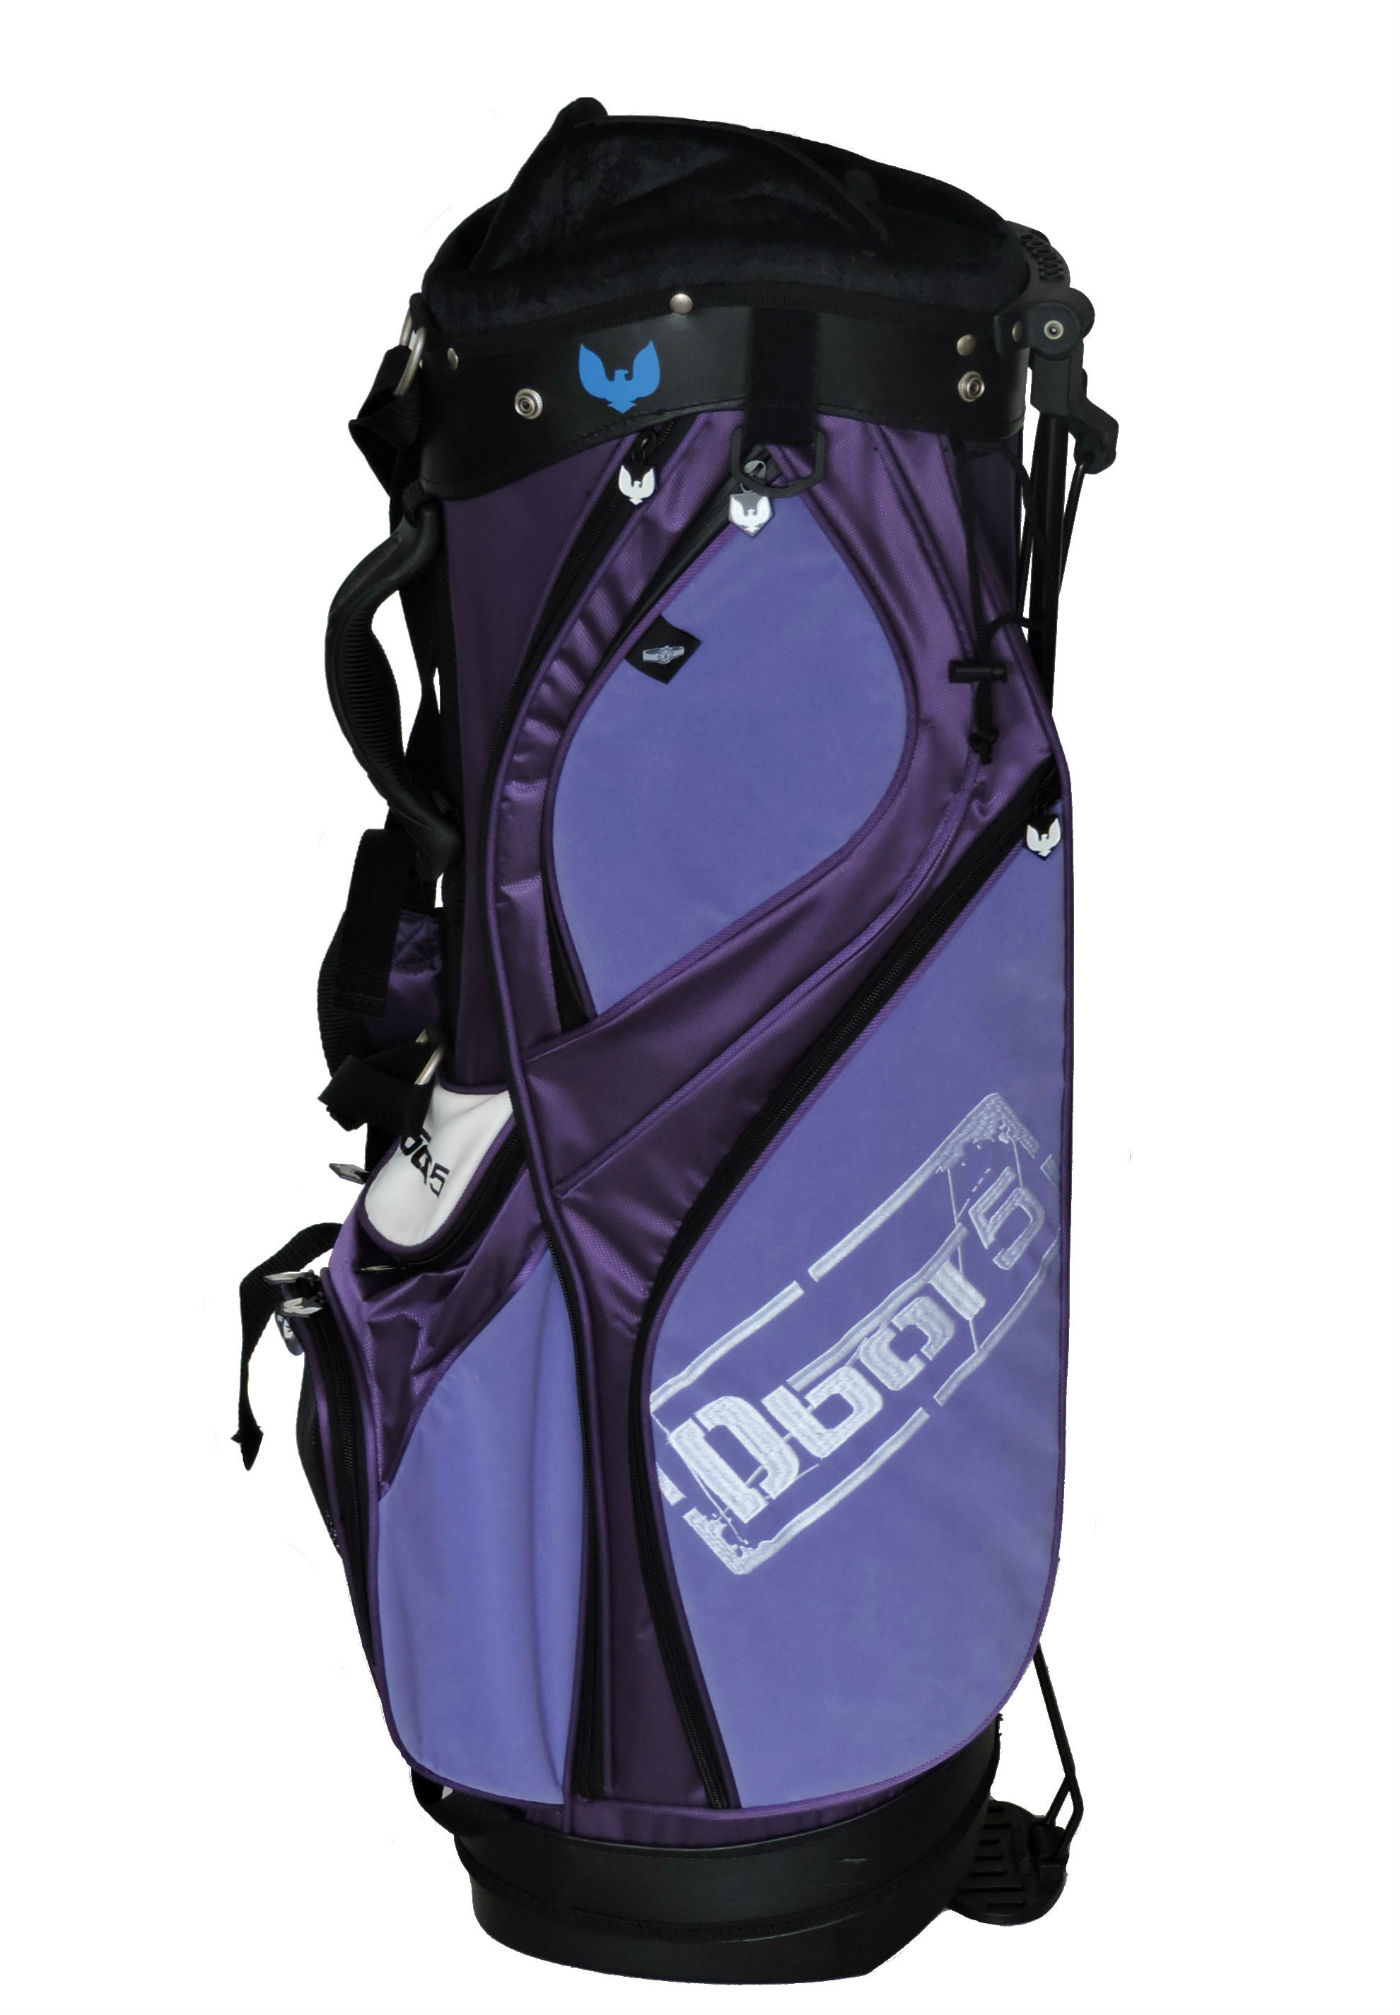 Sephlin - Sephlin Purple Velvet Womens Golf Bag